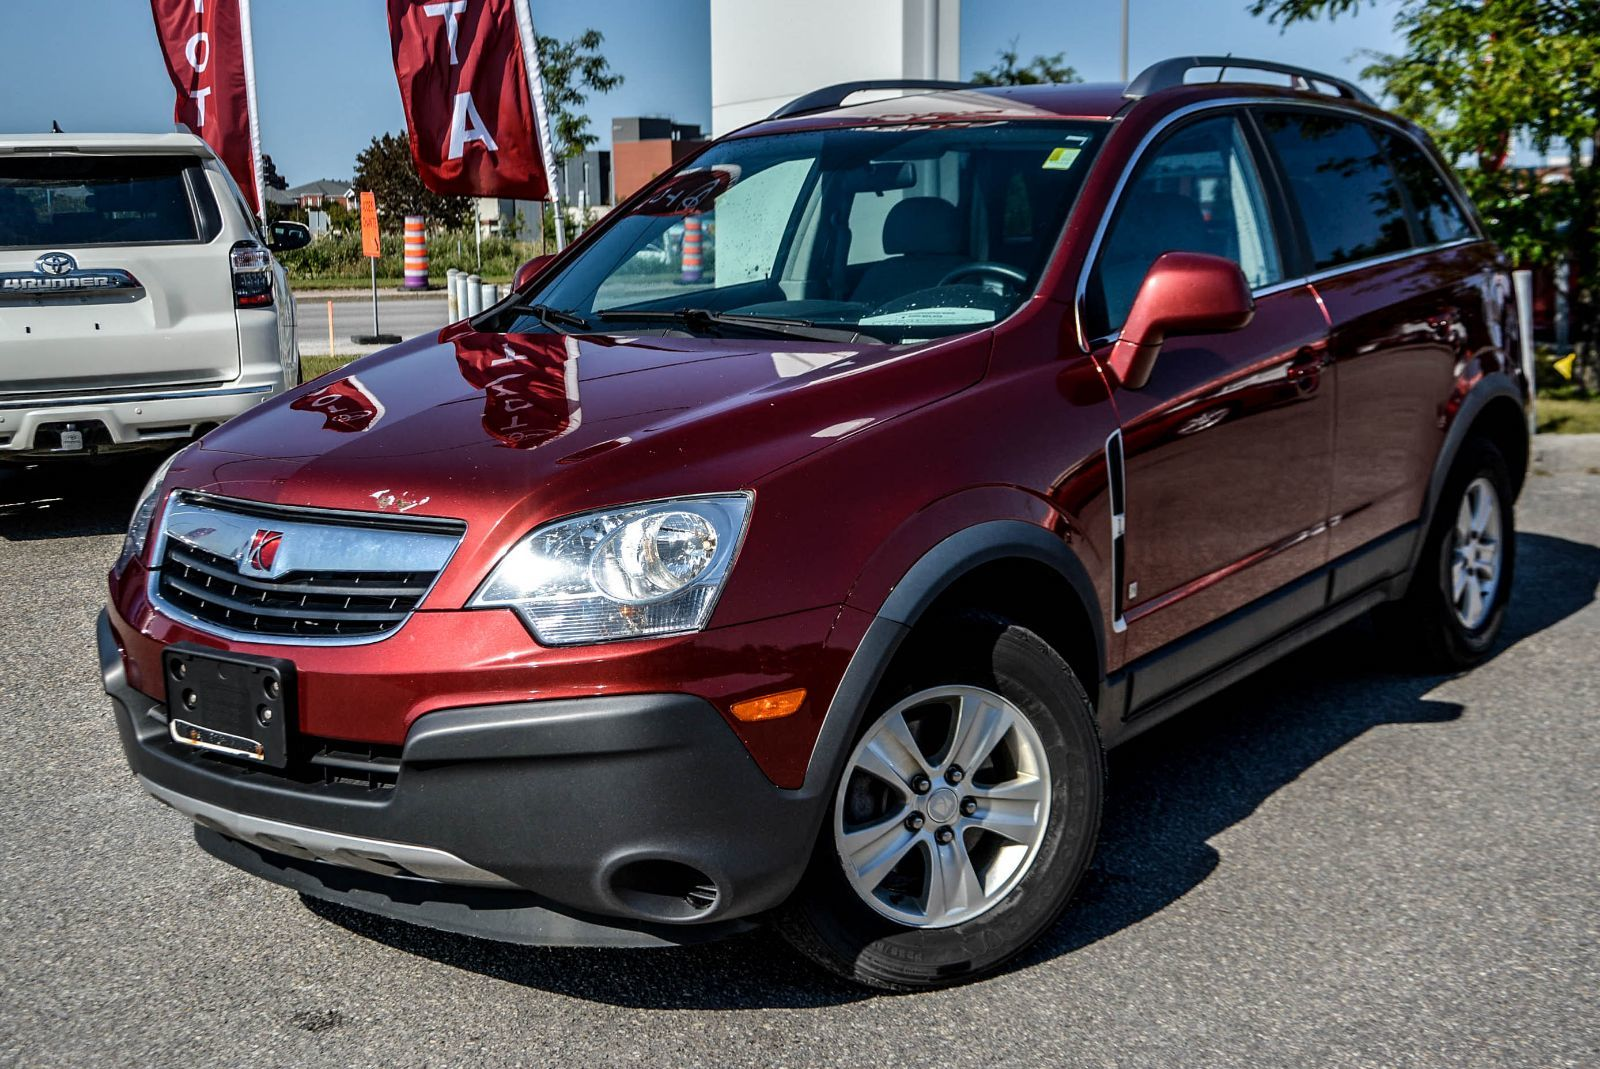 2008 Saturn Vue Xe Awd Used For Sale In Gatineau Toyota Transmission Fluid Location